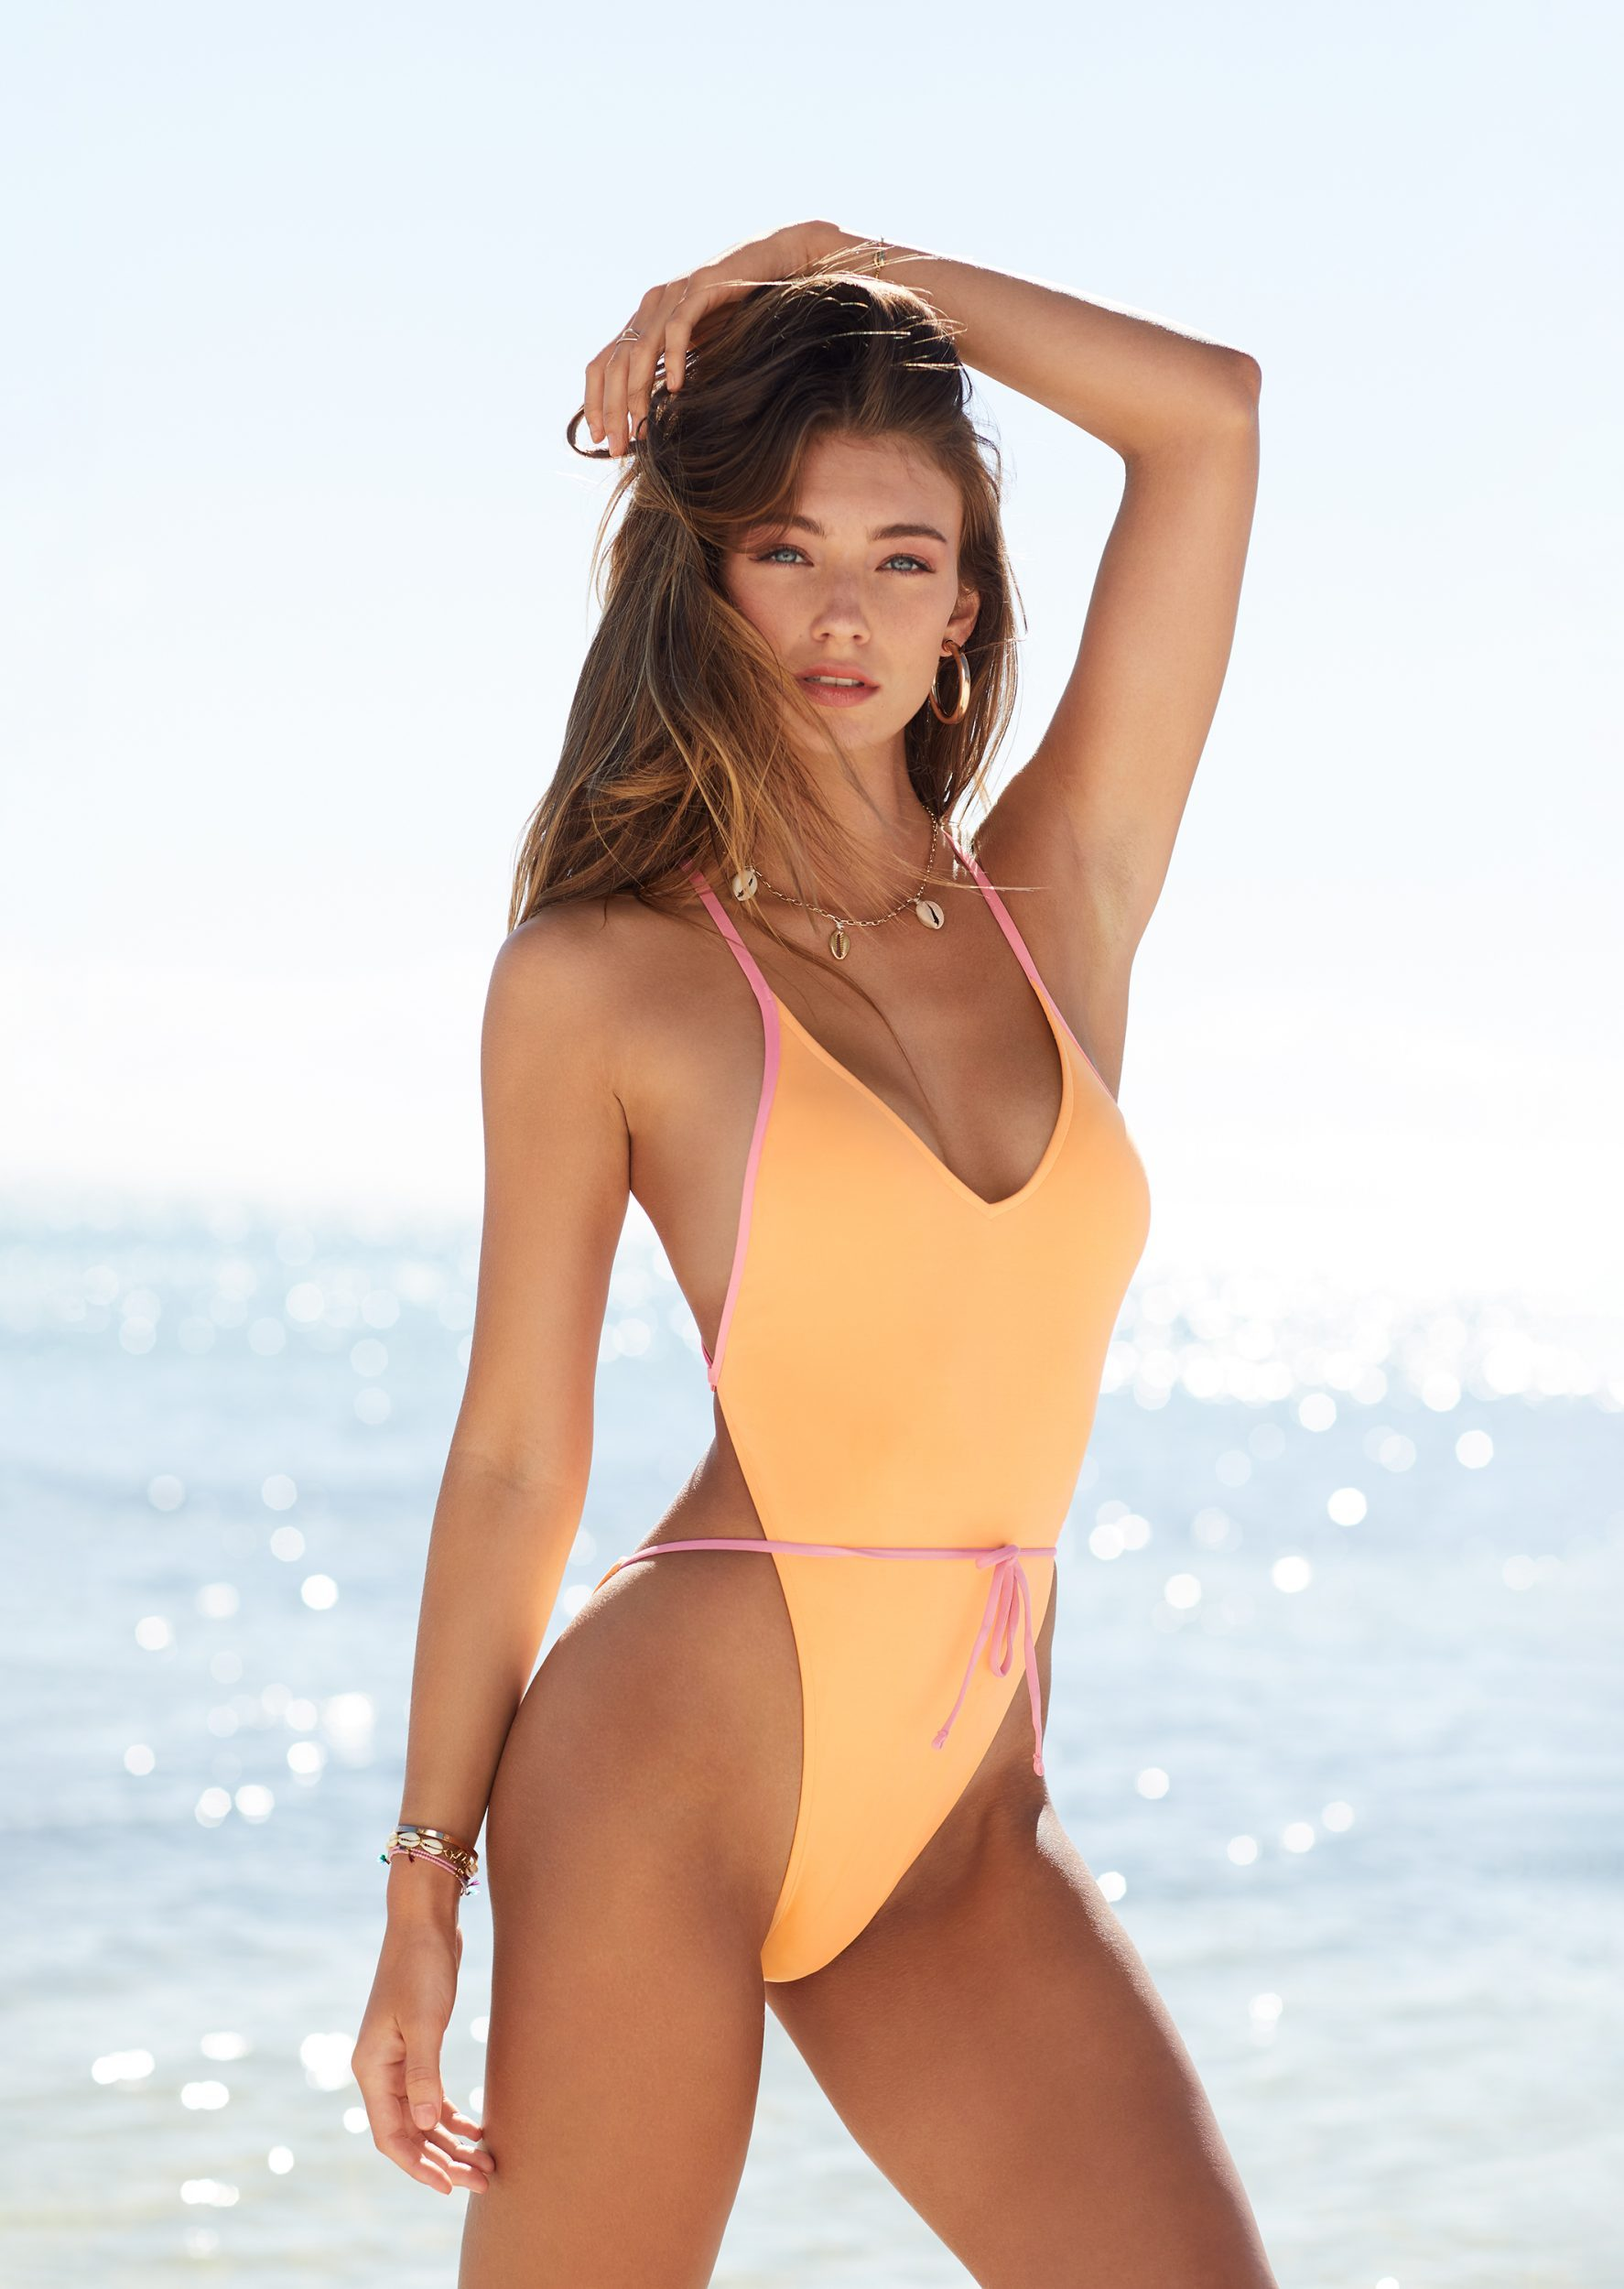 54e78b7c02f Barbara Palvin, Lorena Rae, More Look Incredible In Victoria's Secret Swim  2019 Promo Photos